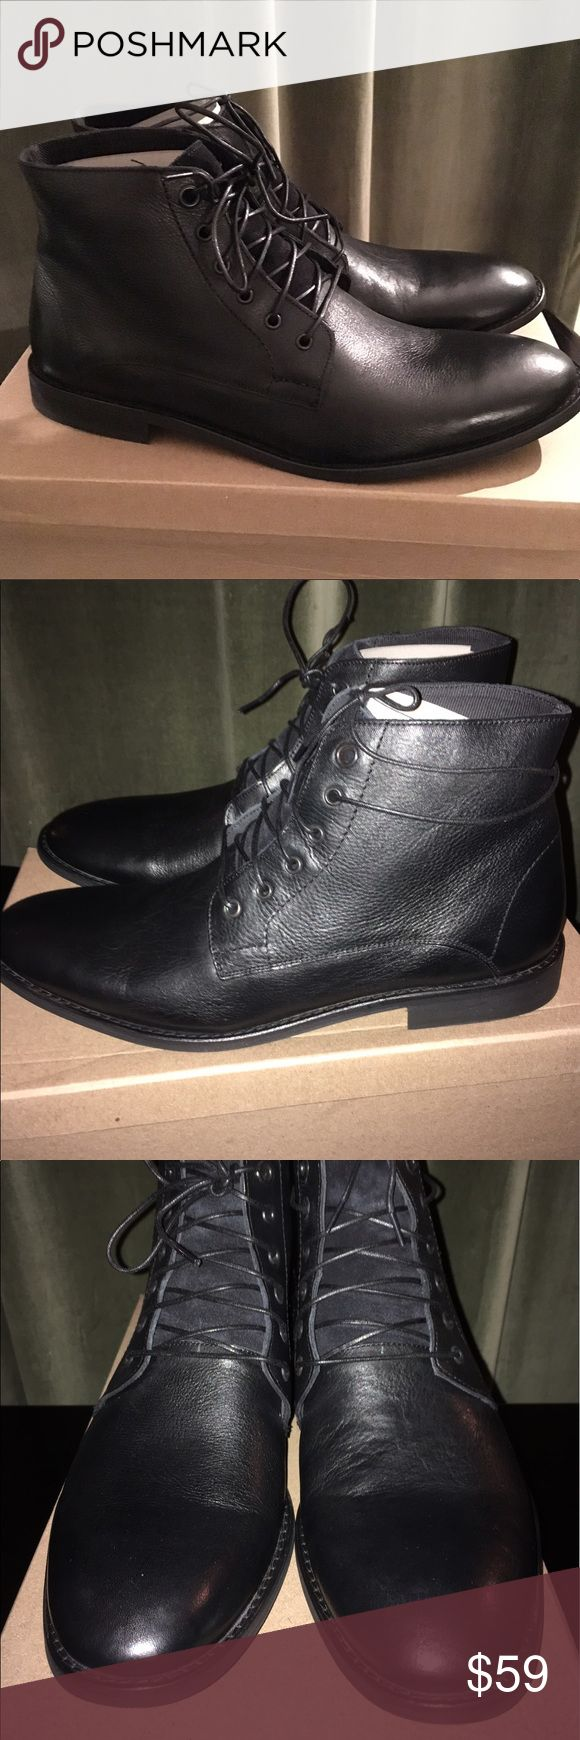 NWT Urban Outfitter Distressed Laceup Leather boot NWT in box distressed black leather black boot from Urban Outfitters Urban Outfitters Shoes Boots